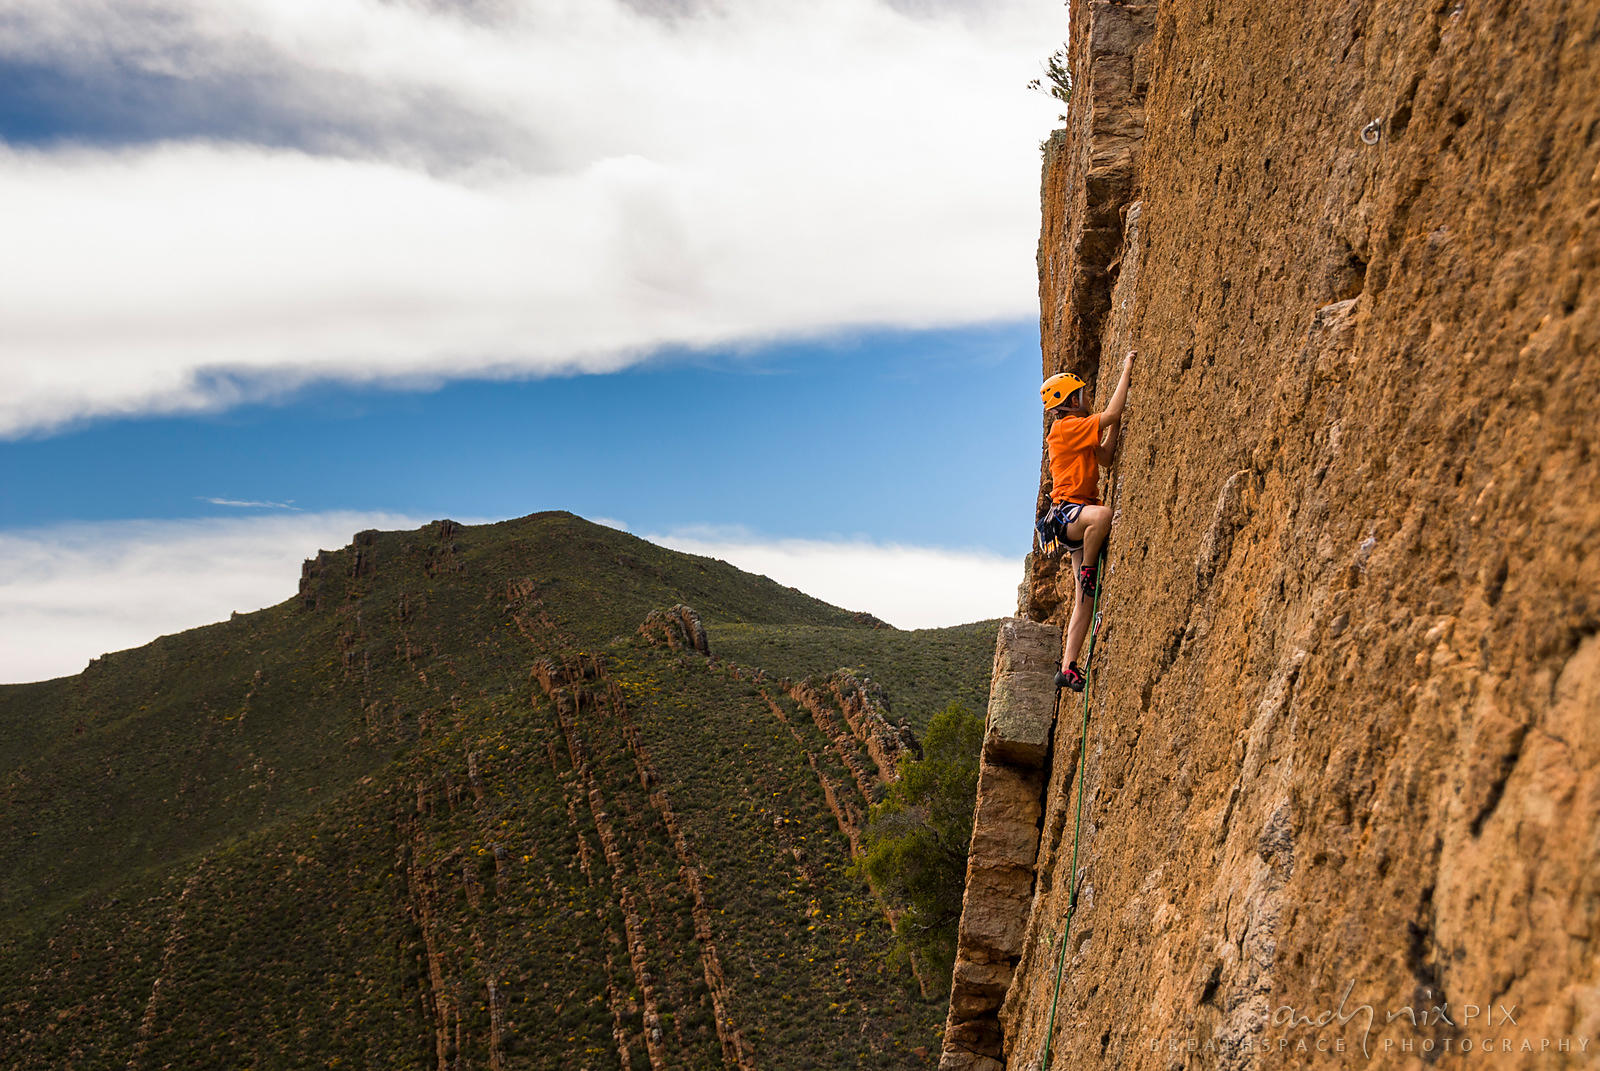 Rock climbers on cliff face